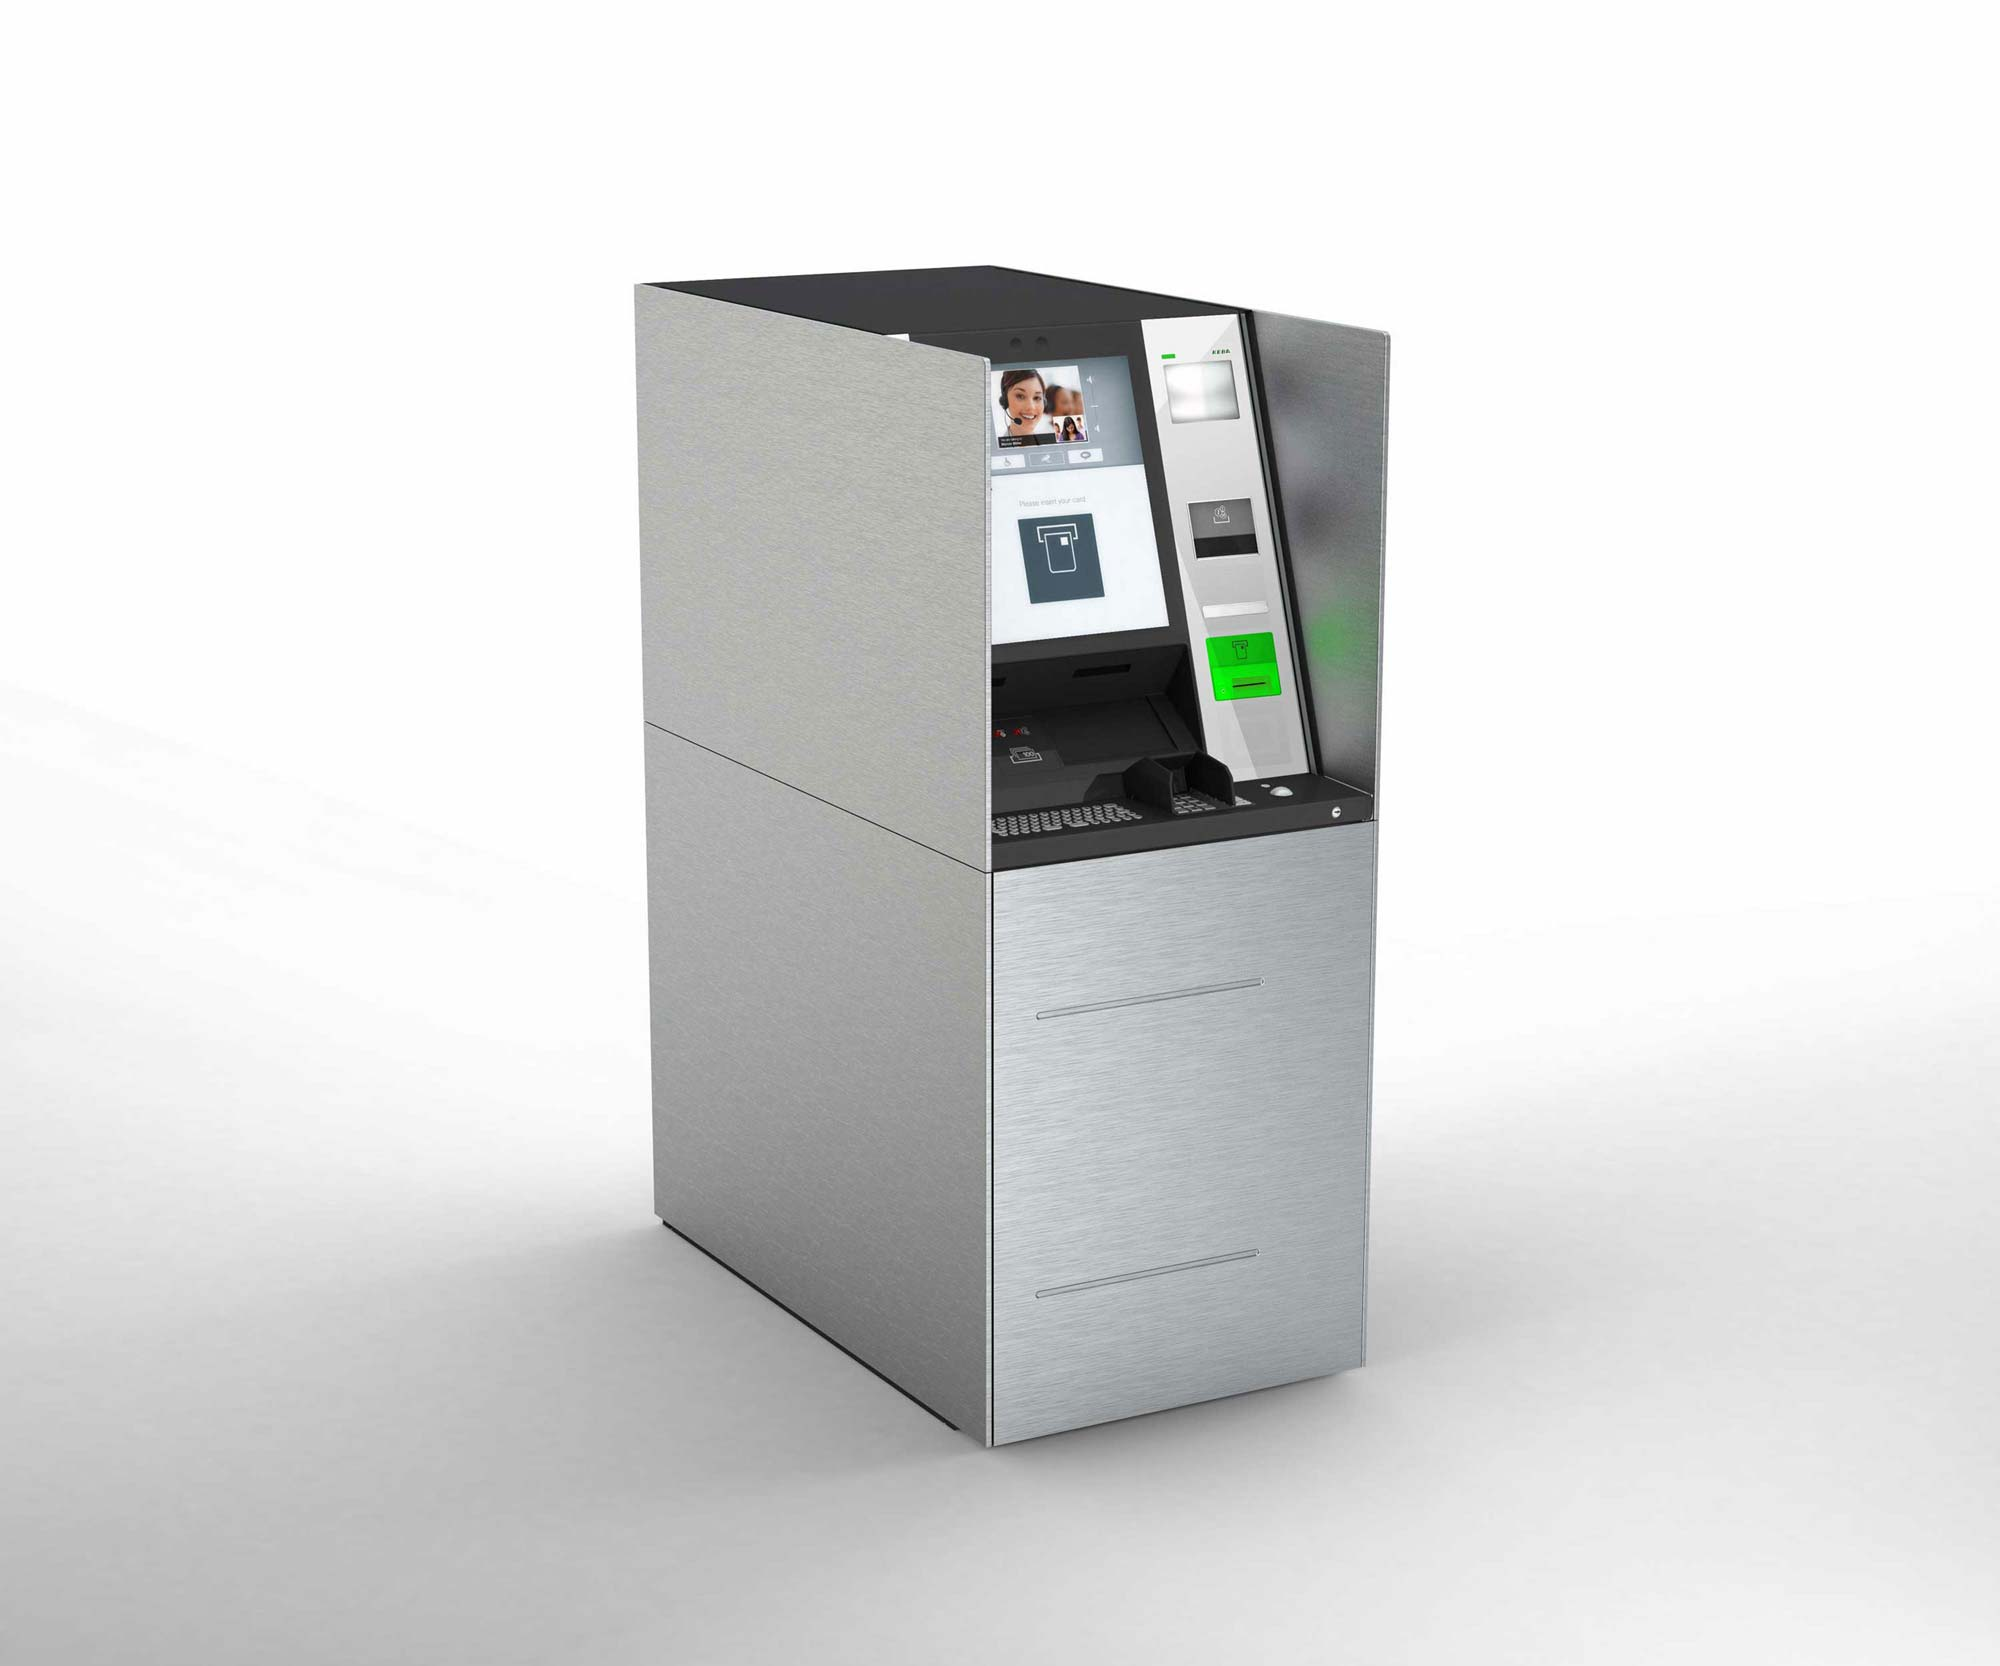 Individualized Cash Recycler of the evo series